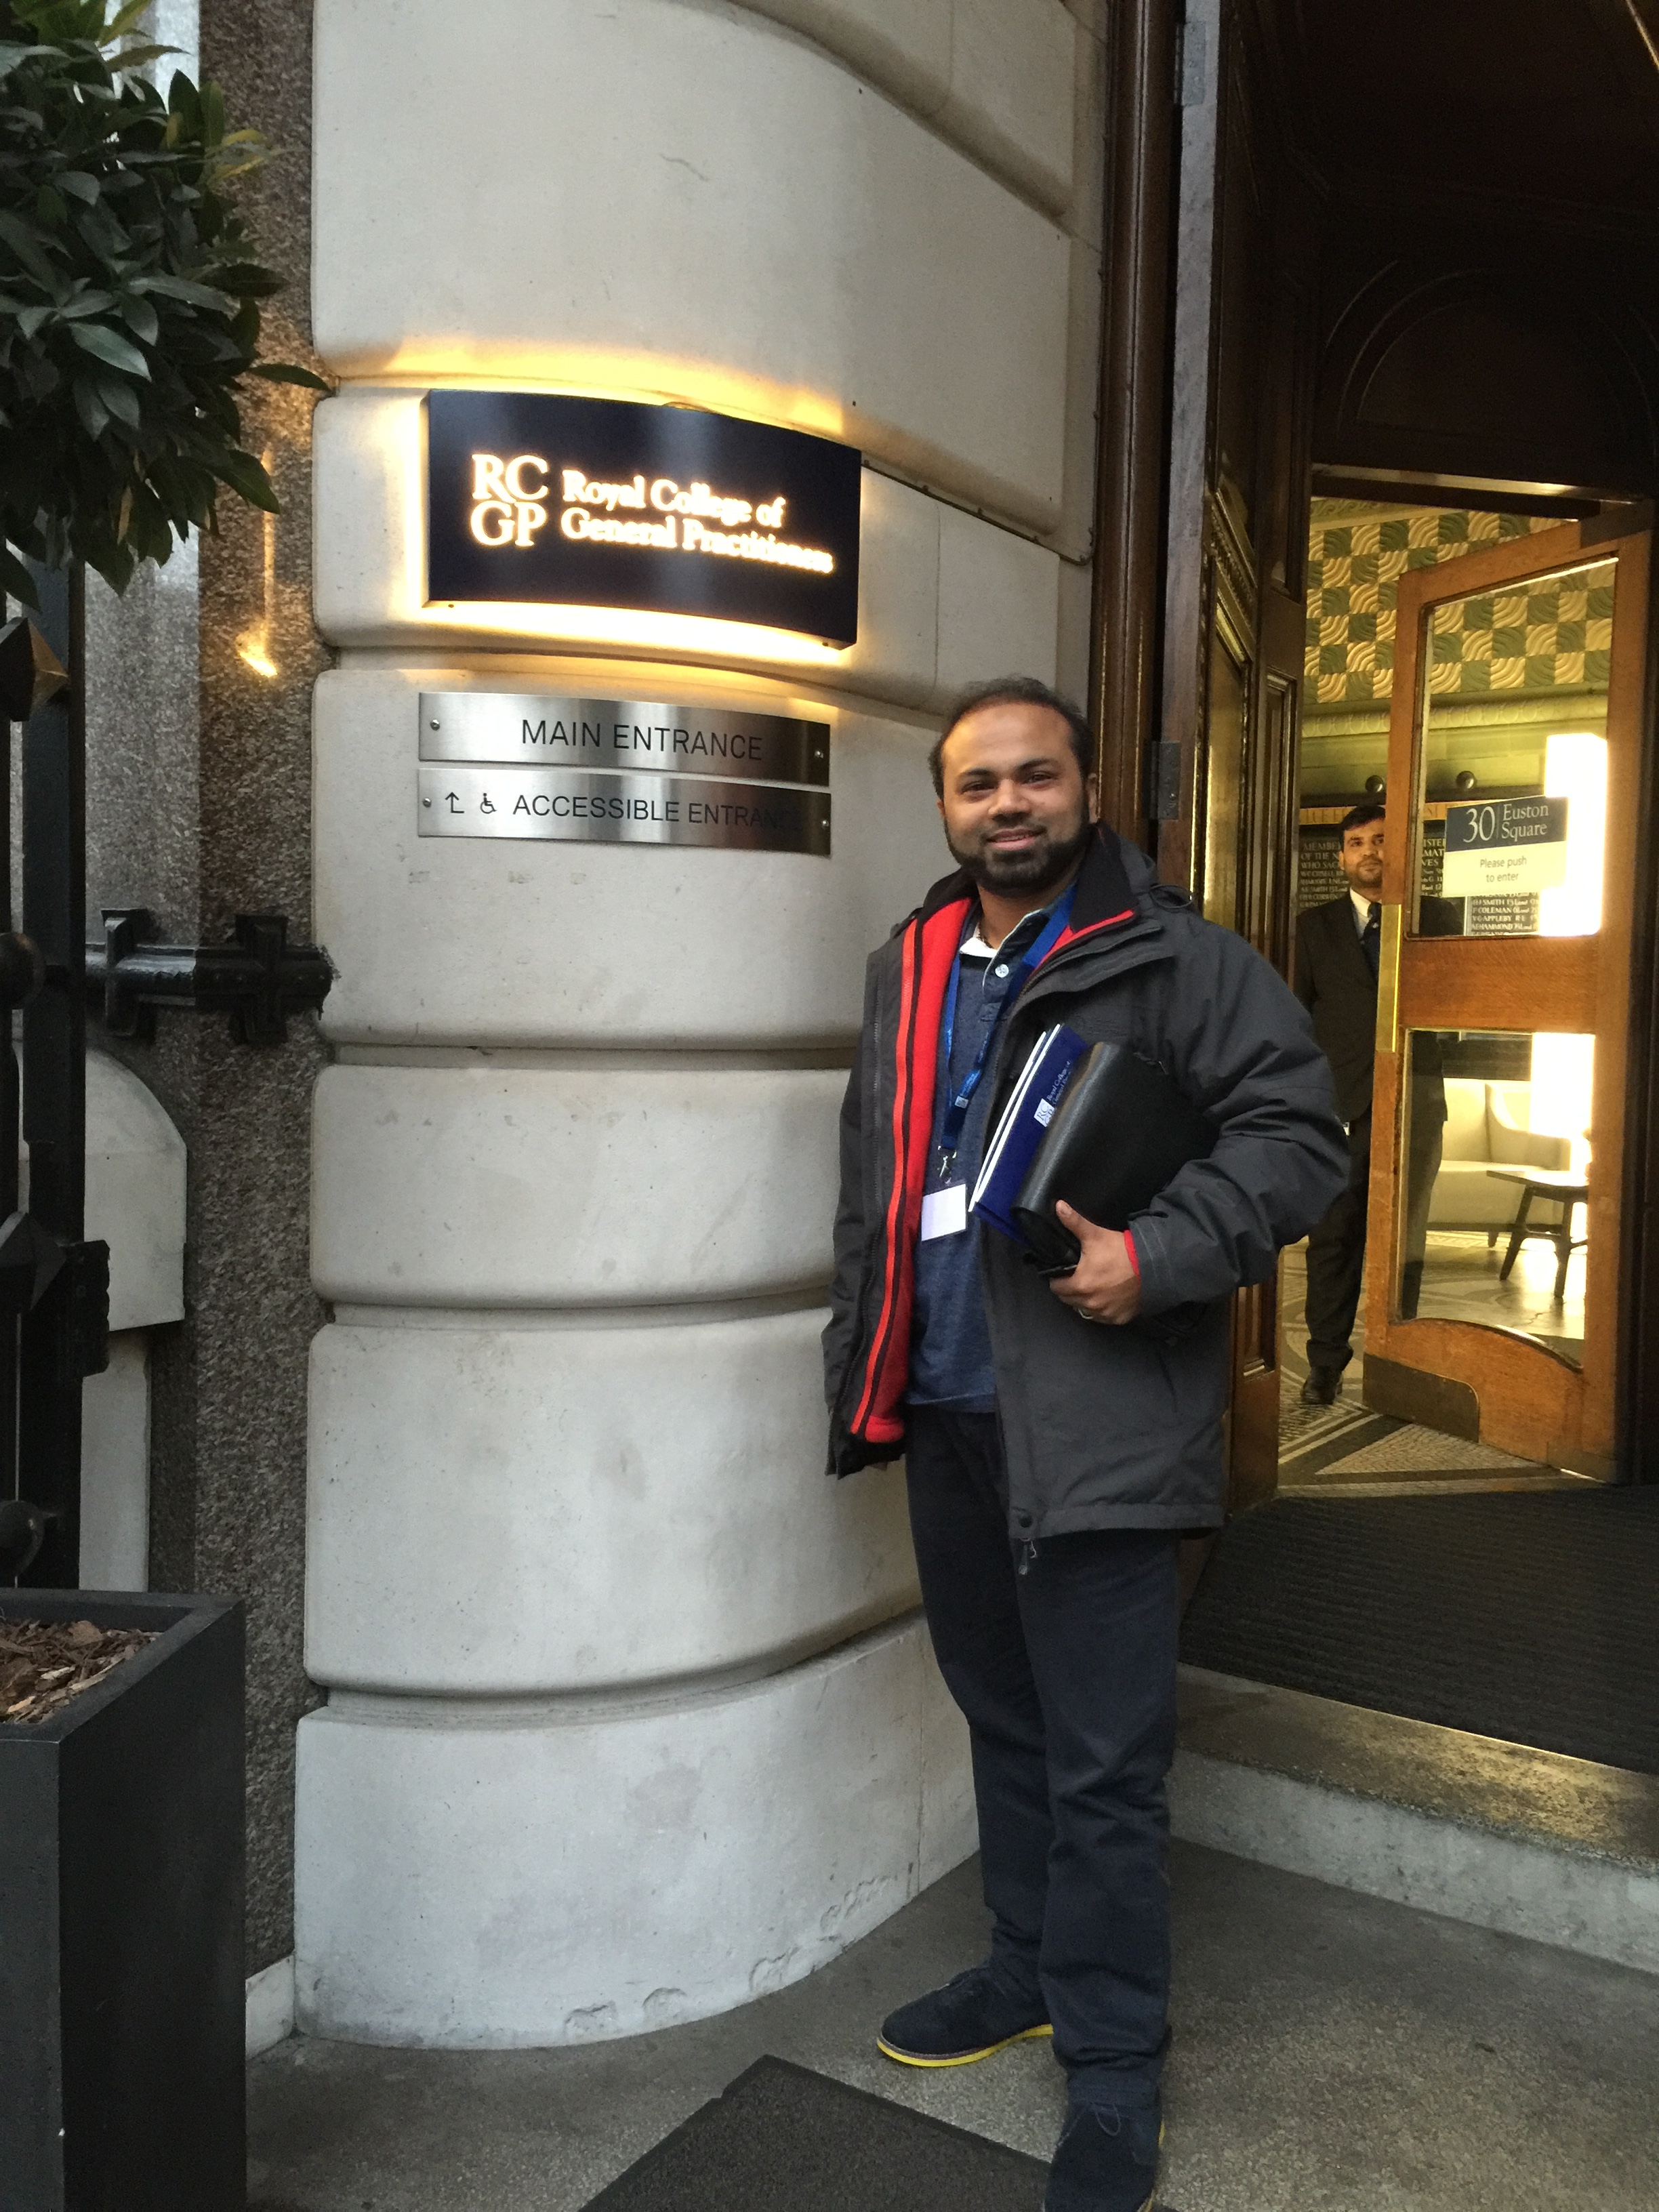 Dr Mannan MRCGP. Attending a GP Training course at the Royal College of General Practitioners.